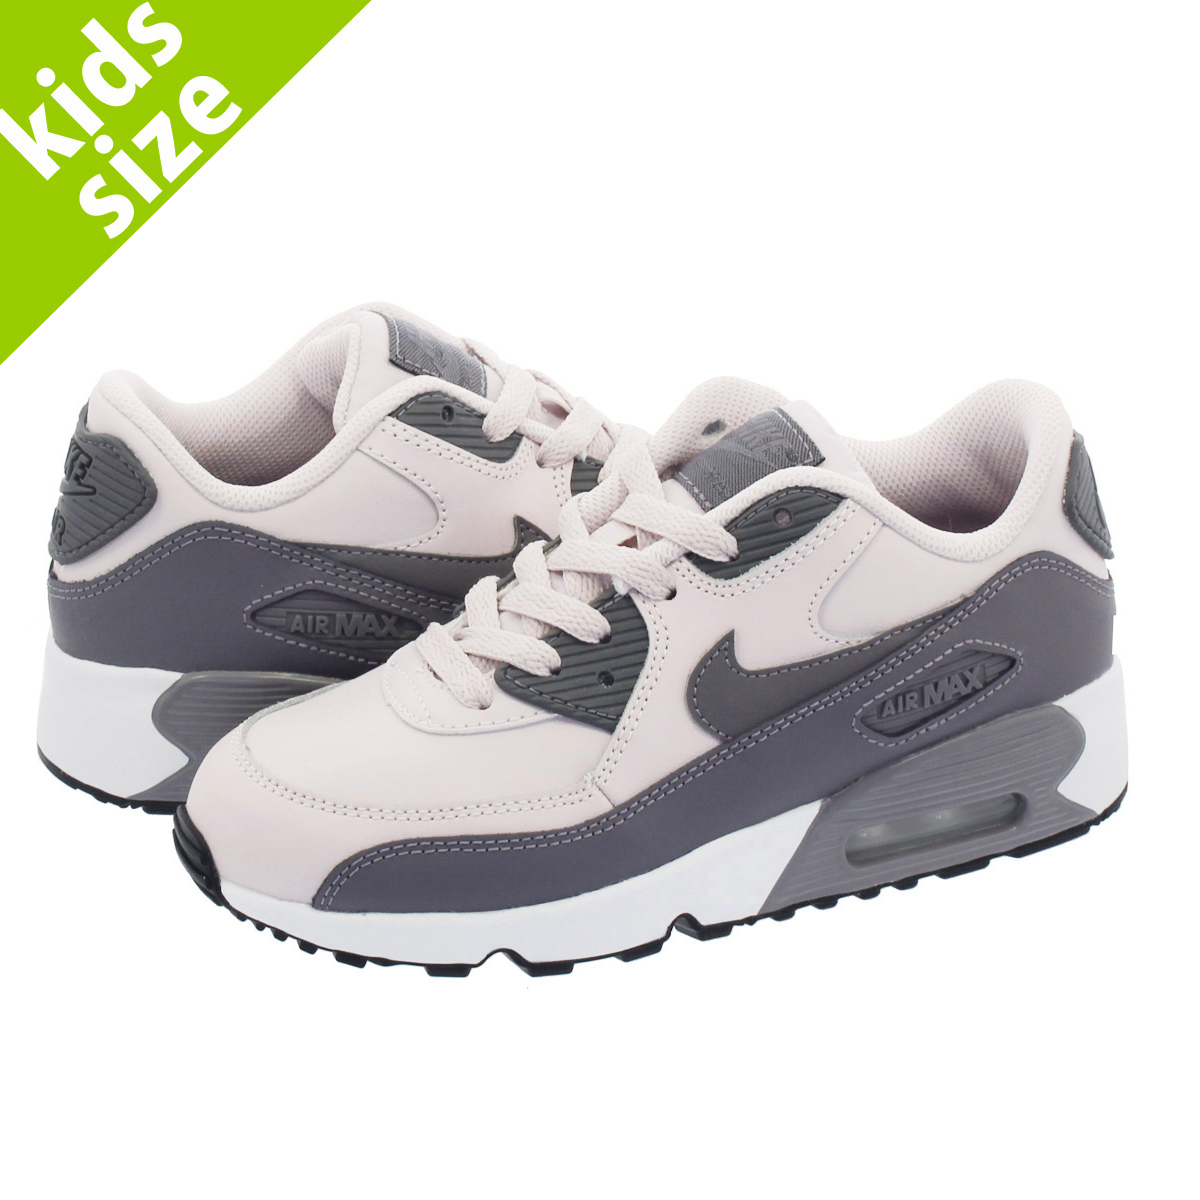 b4a9297d9a NIKE AIR MAX 90 LTR PS Kie Ney AMAX 90 leather PS BARELY ROSE/GUNSMOKE ...